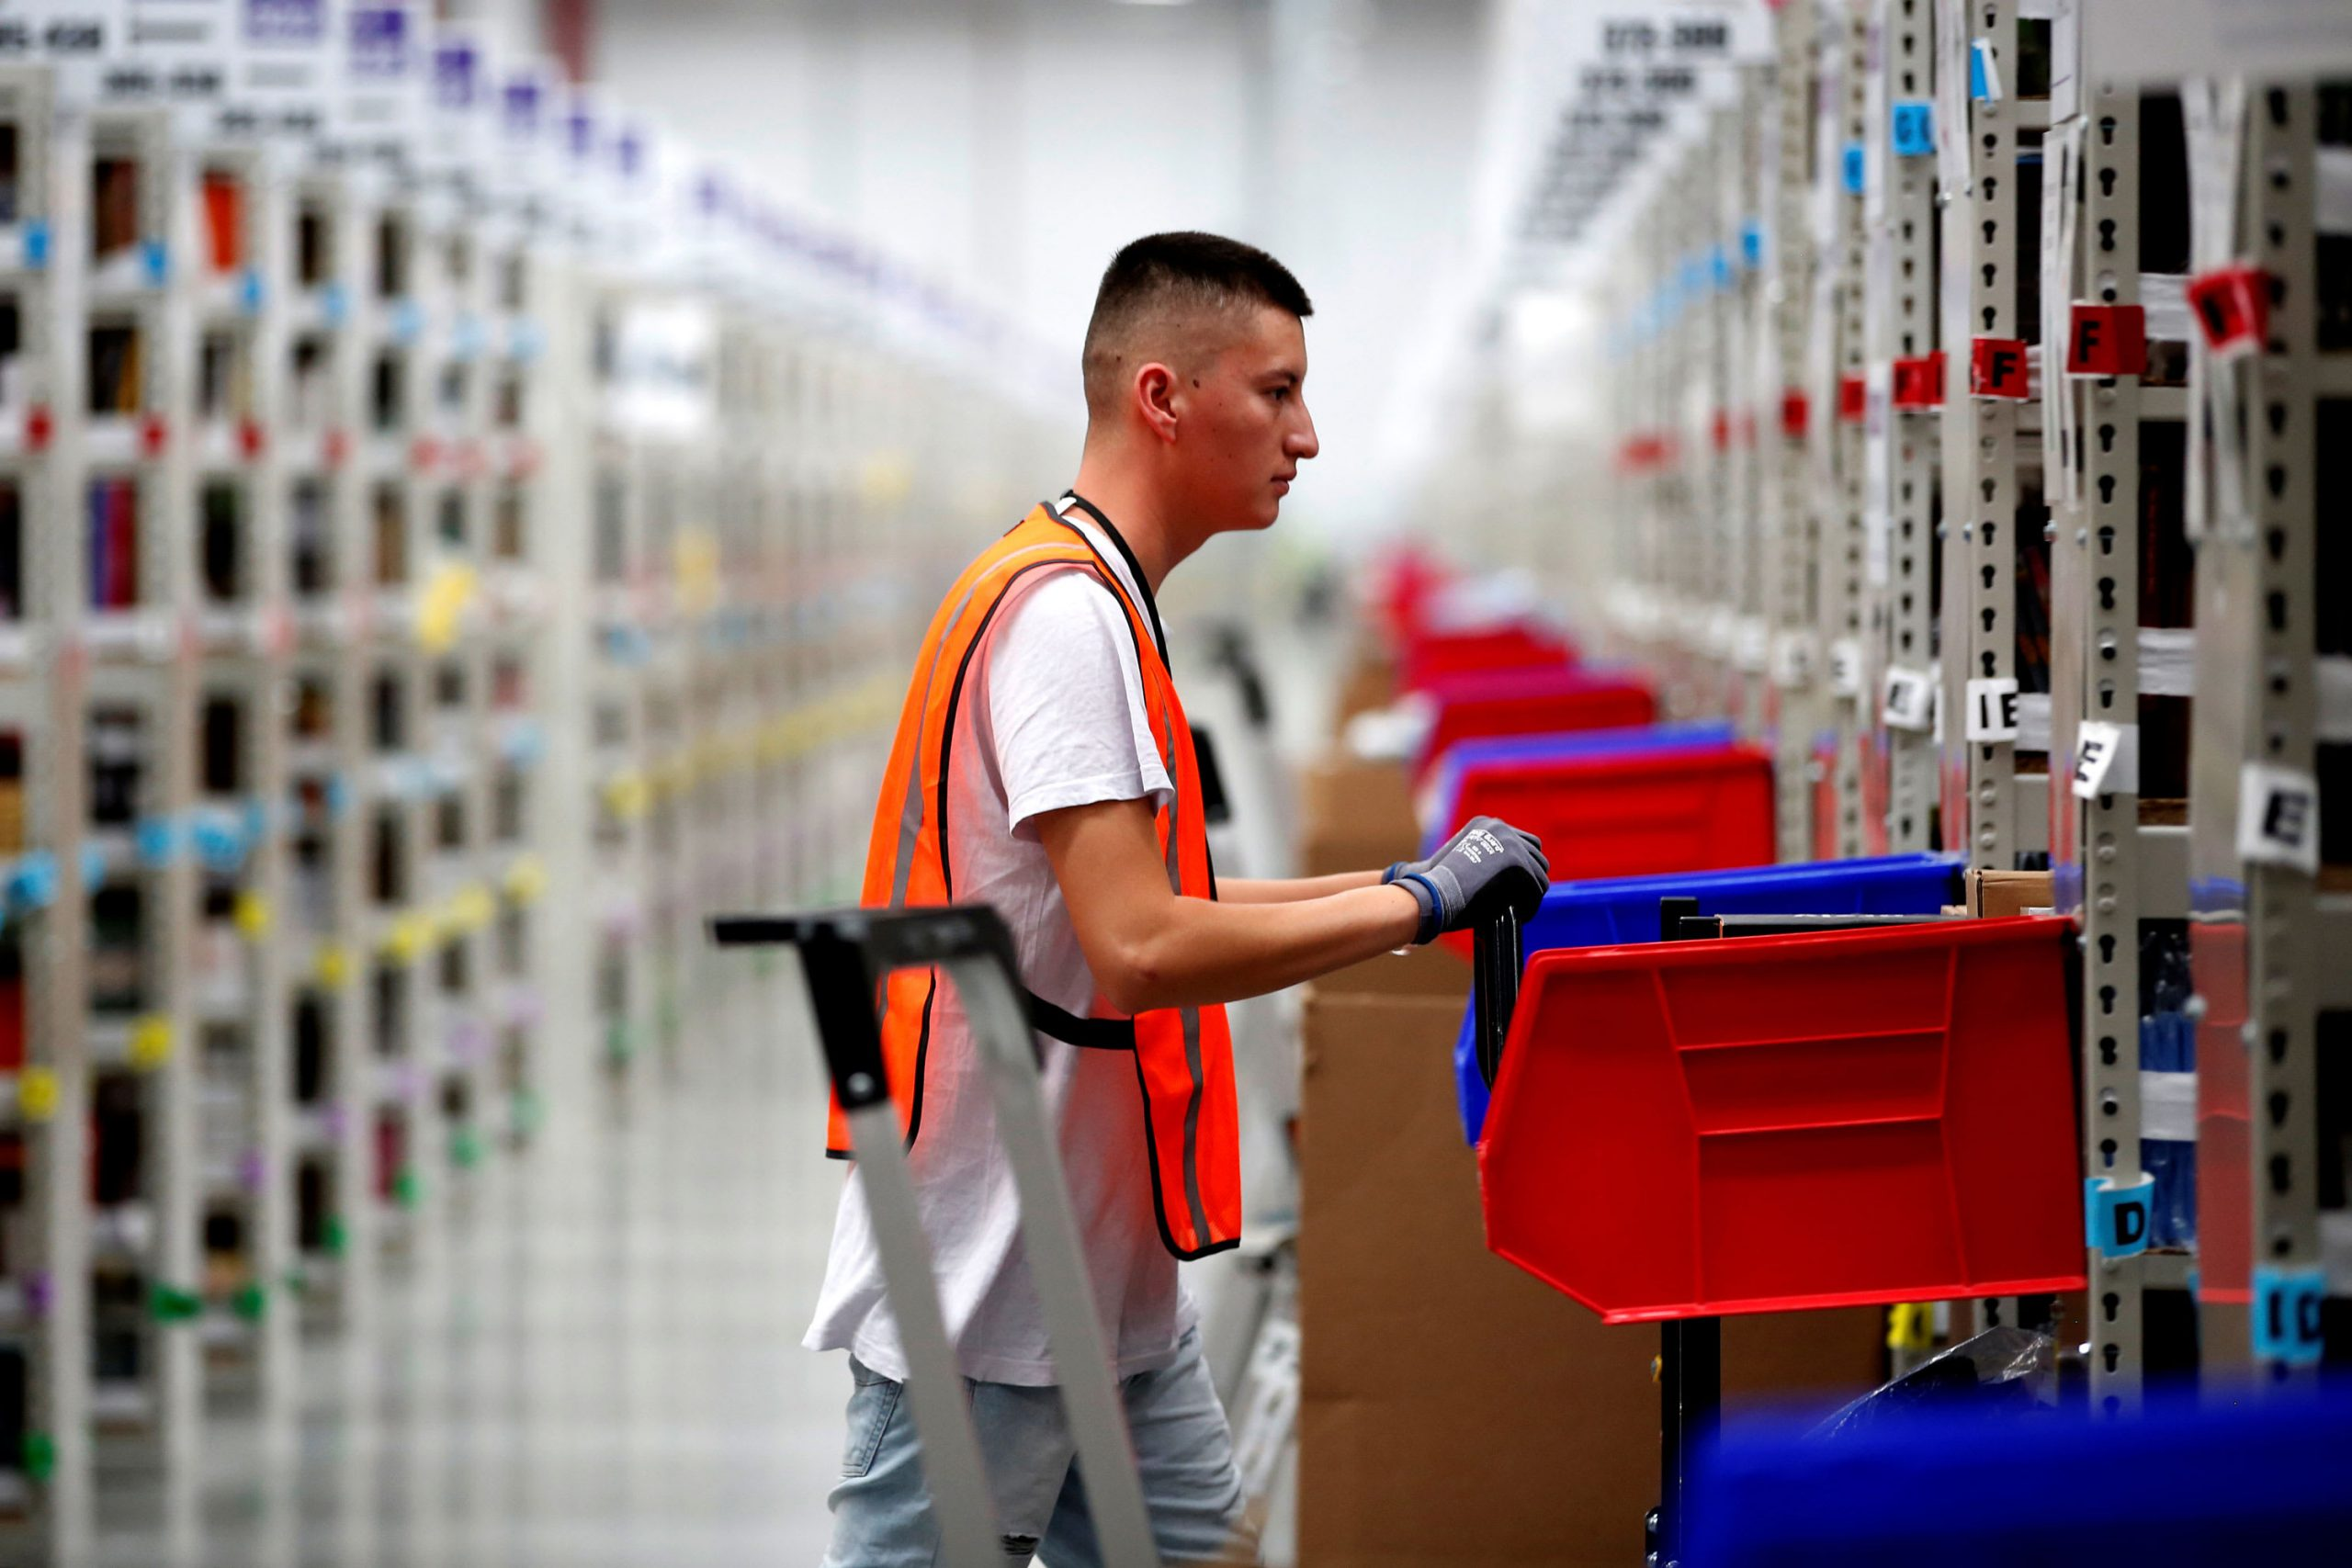 amazon-invests-in-battery-recycling-firm-started-by-former-tesla-executive